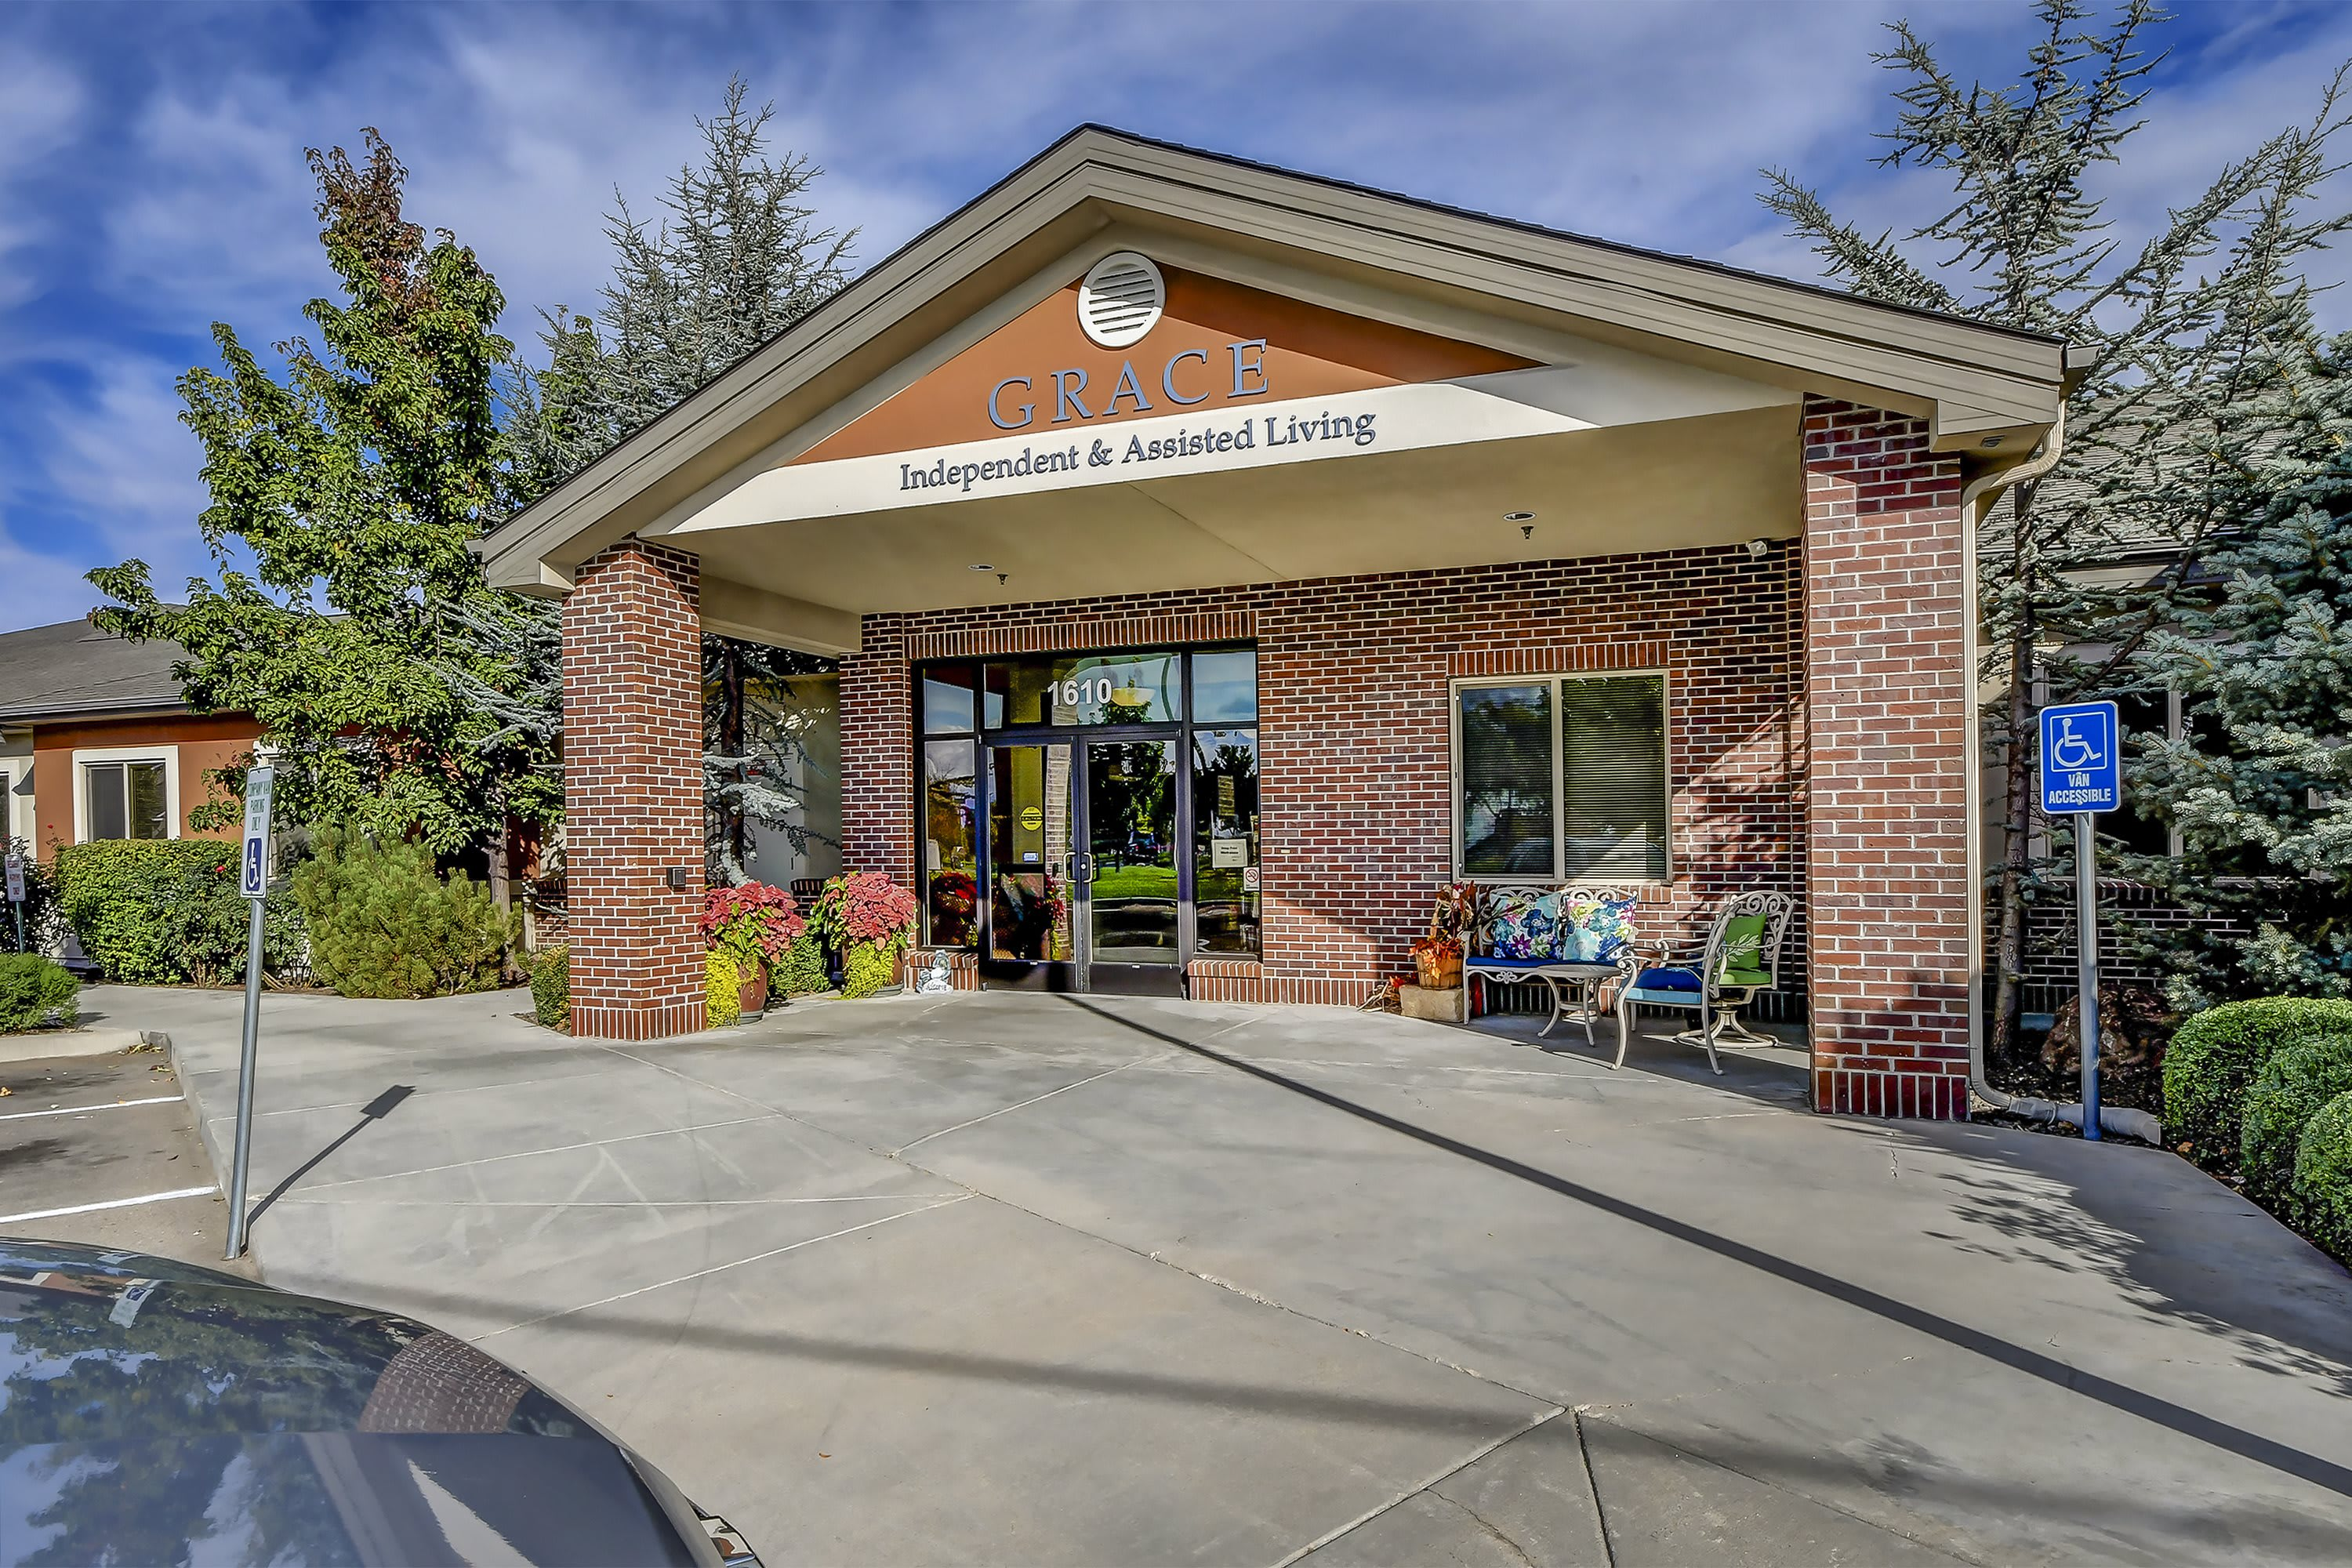 Photo 1 of Grace Assisted Living at Sunny Ridge